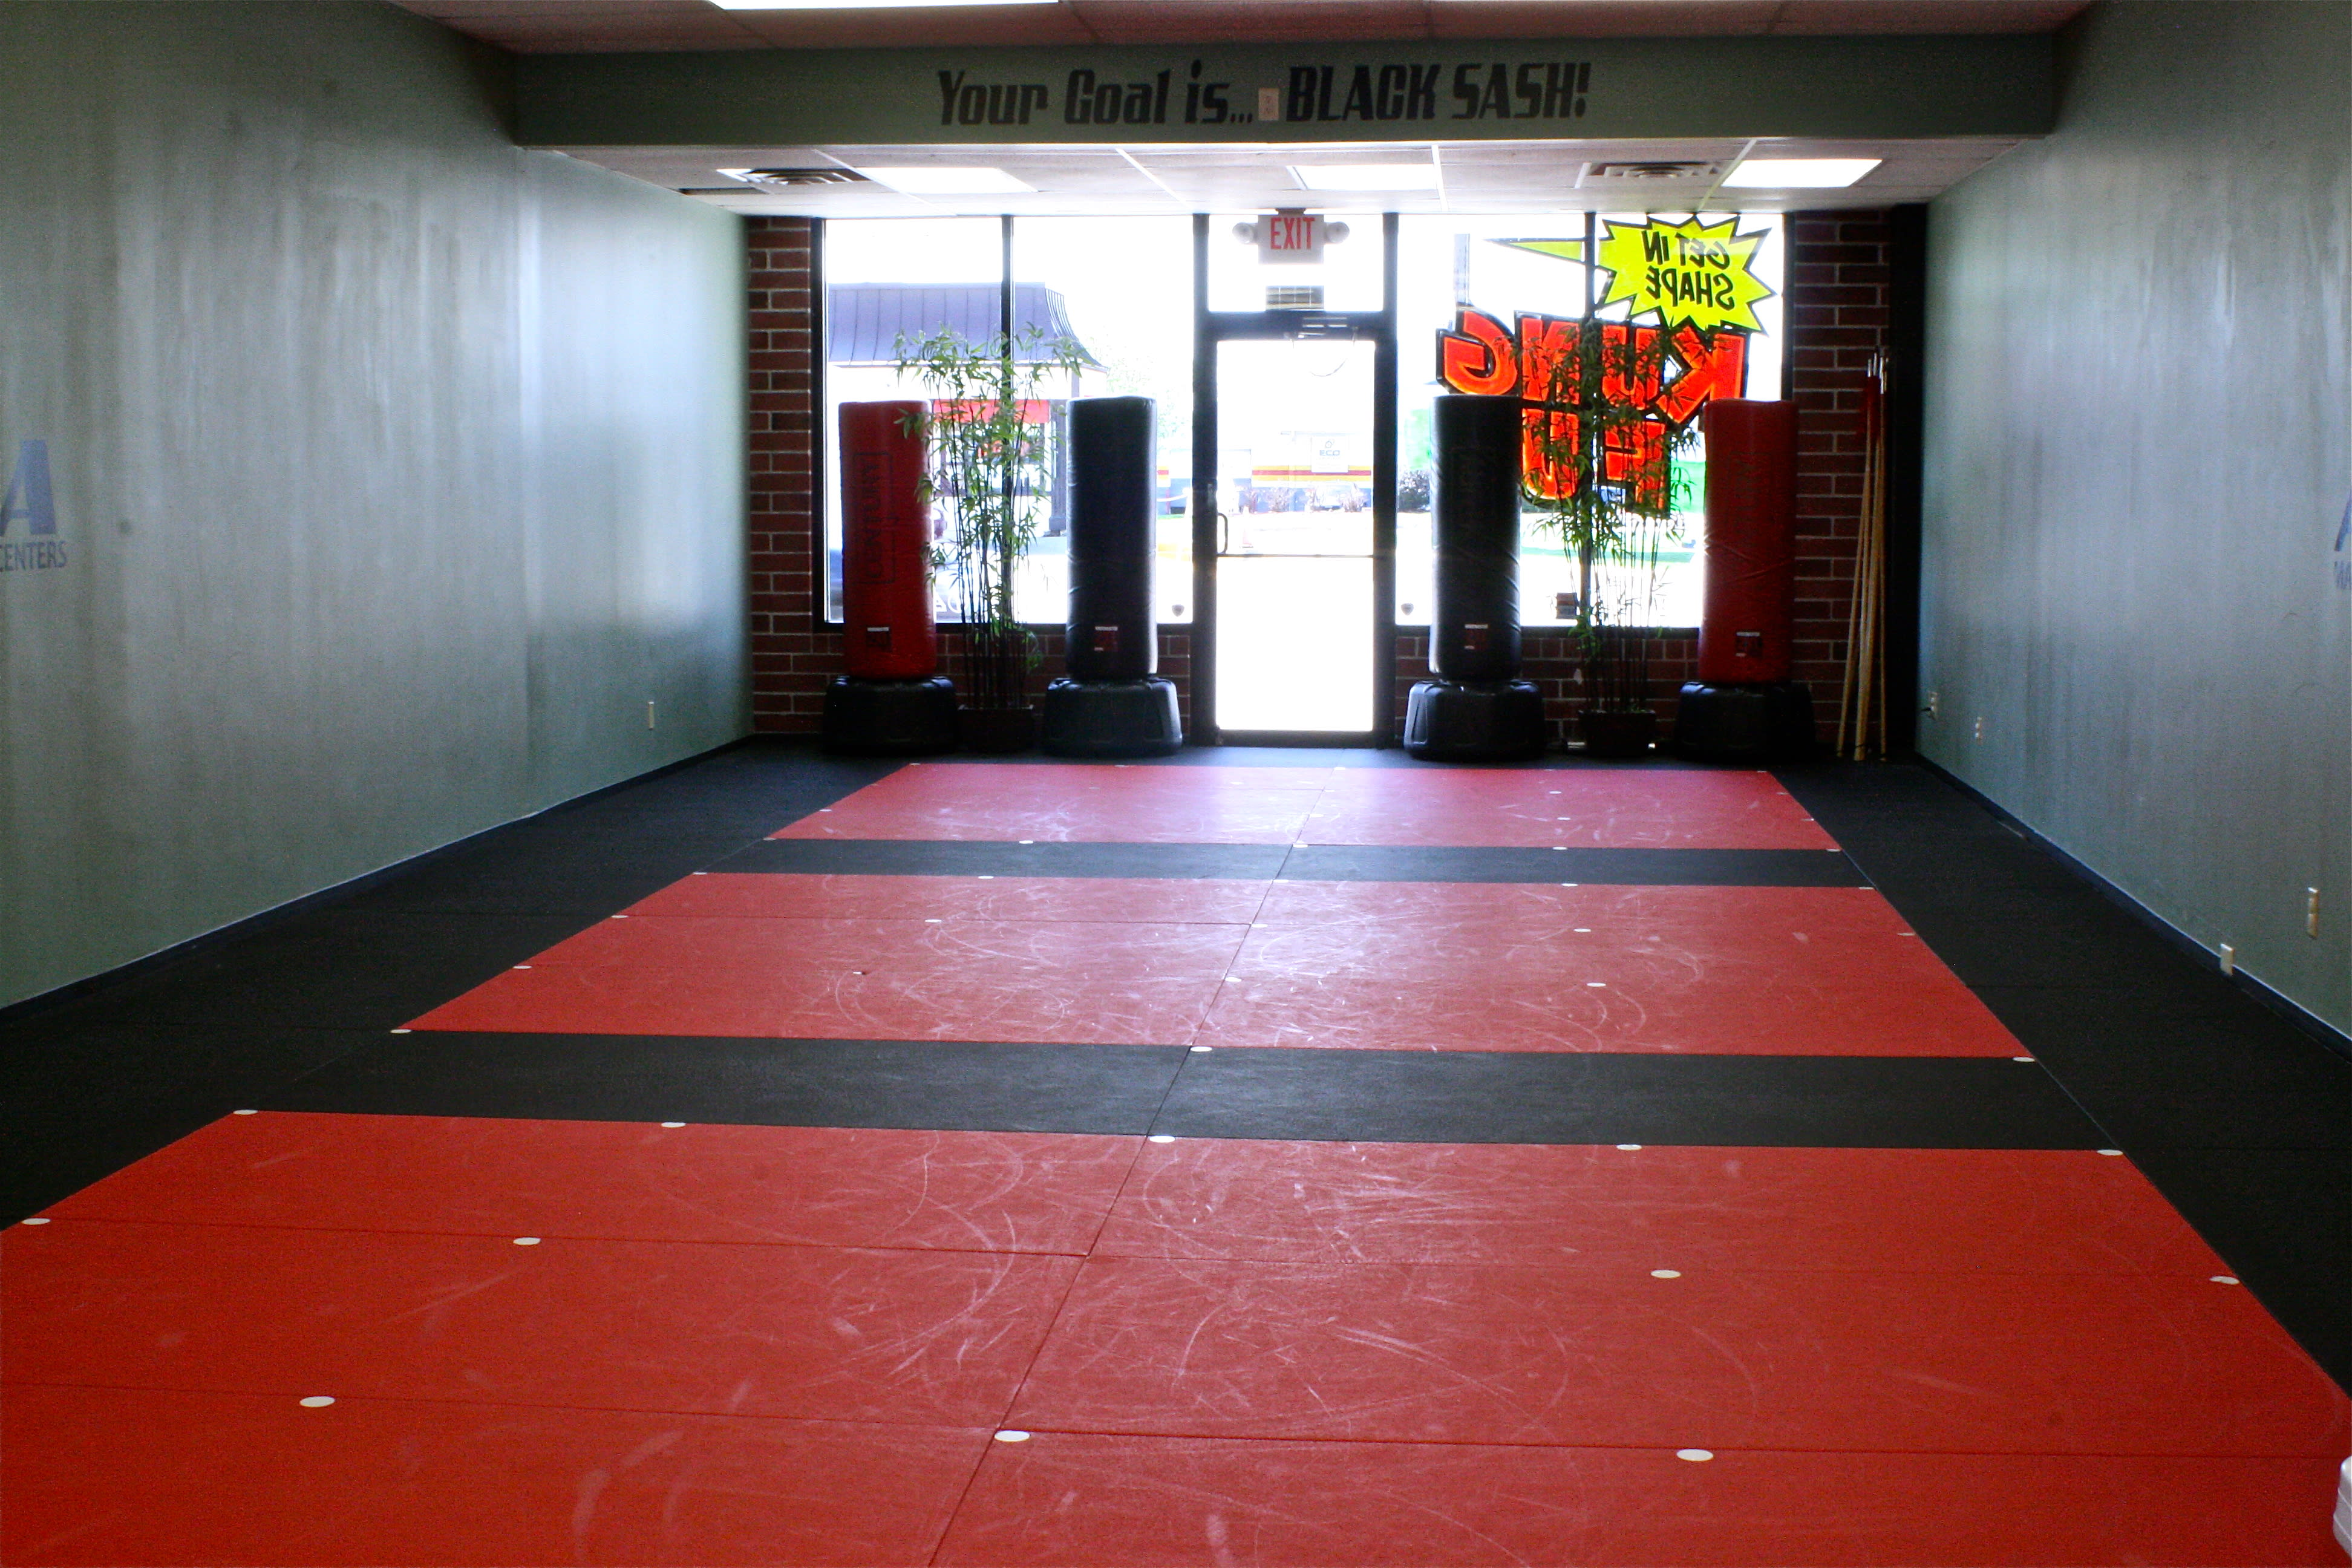 American Academies of Martial Arts